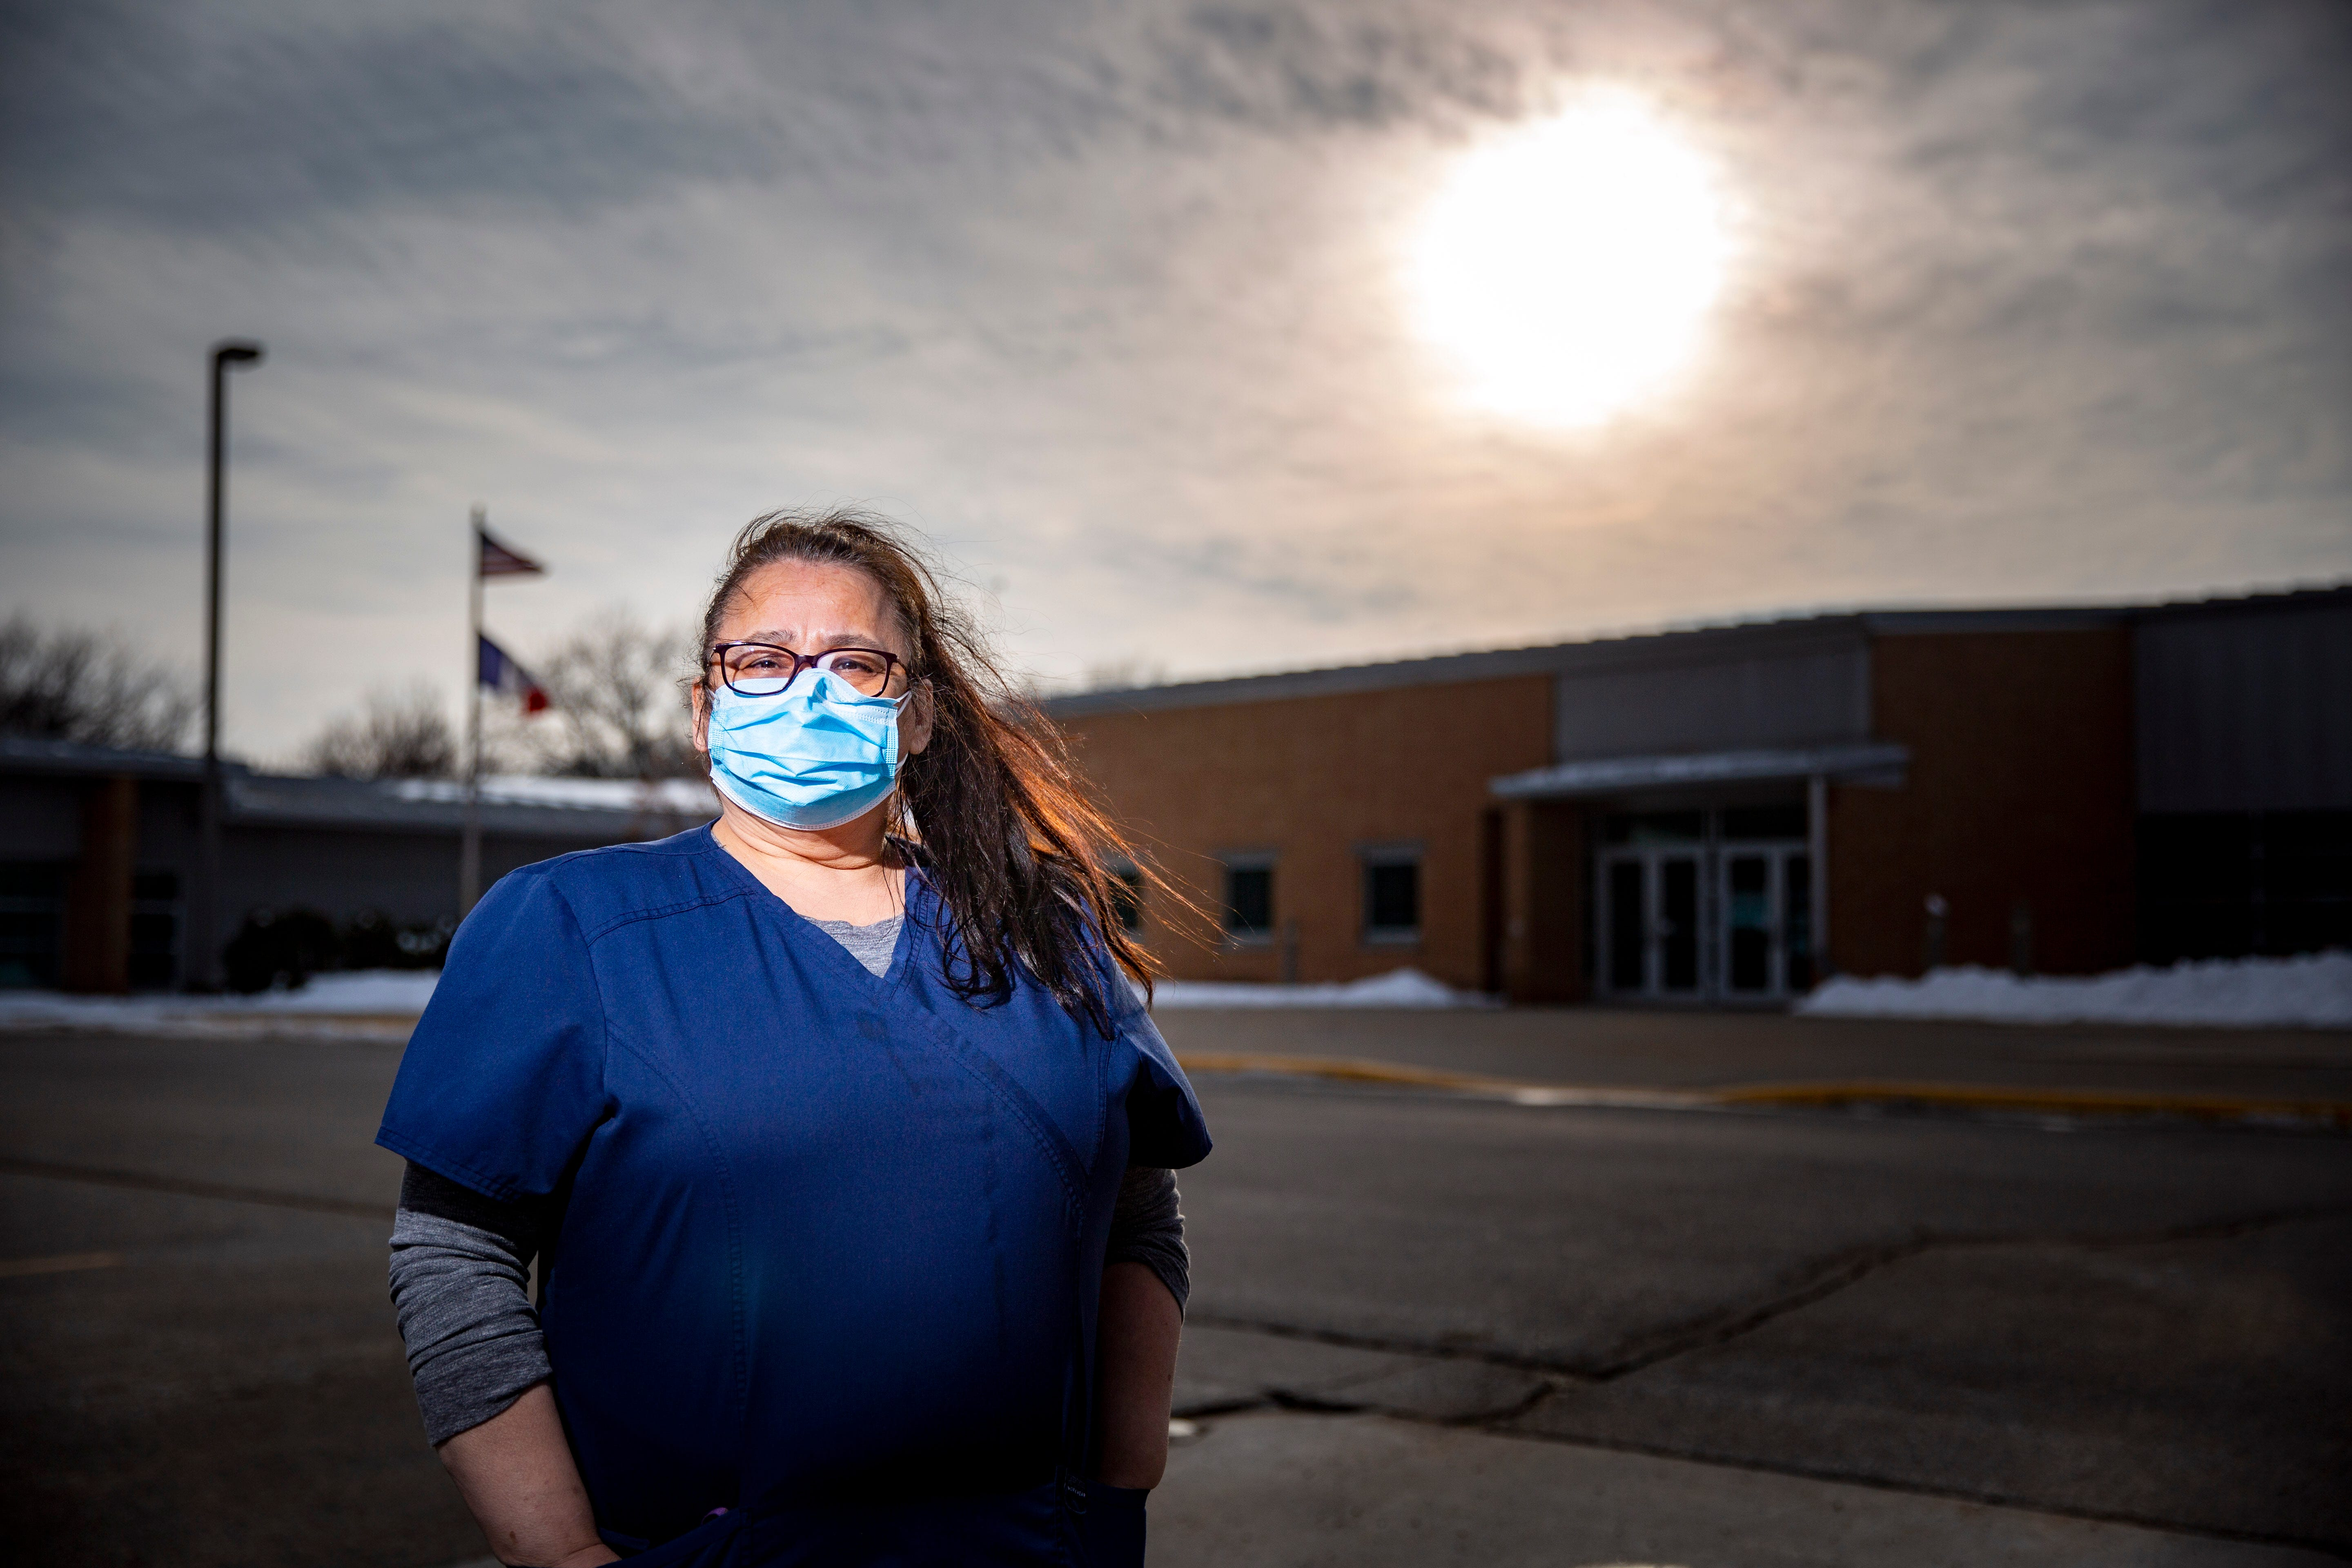 Mary Embrey stands for a photo at Webster City Middle School after a day of teaching Wednesday, Feb. 3.